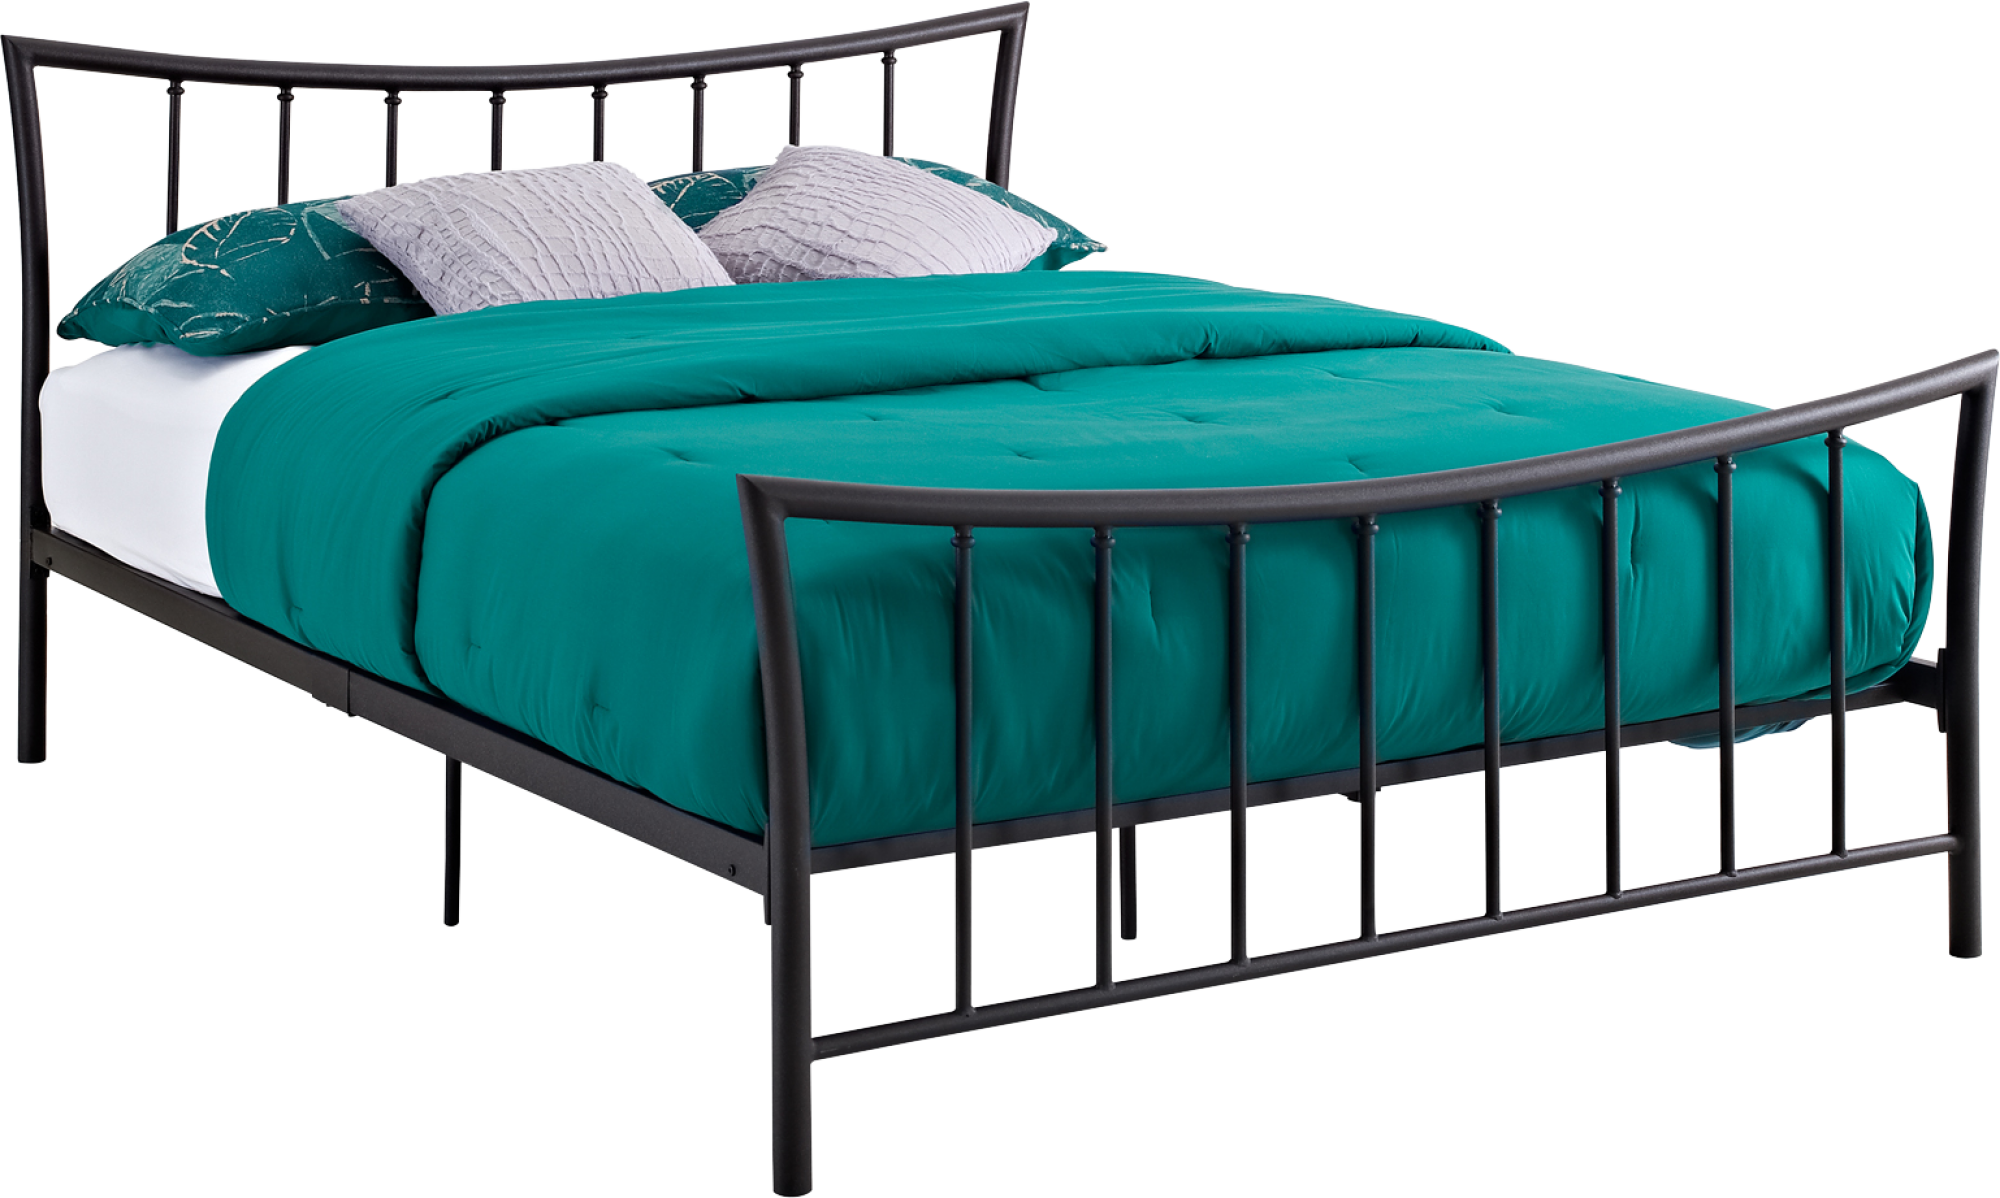 Iron Bed, Bed, Mattress White Bed, Green Bed Png 2828